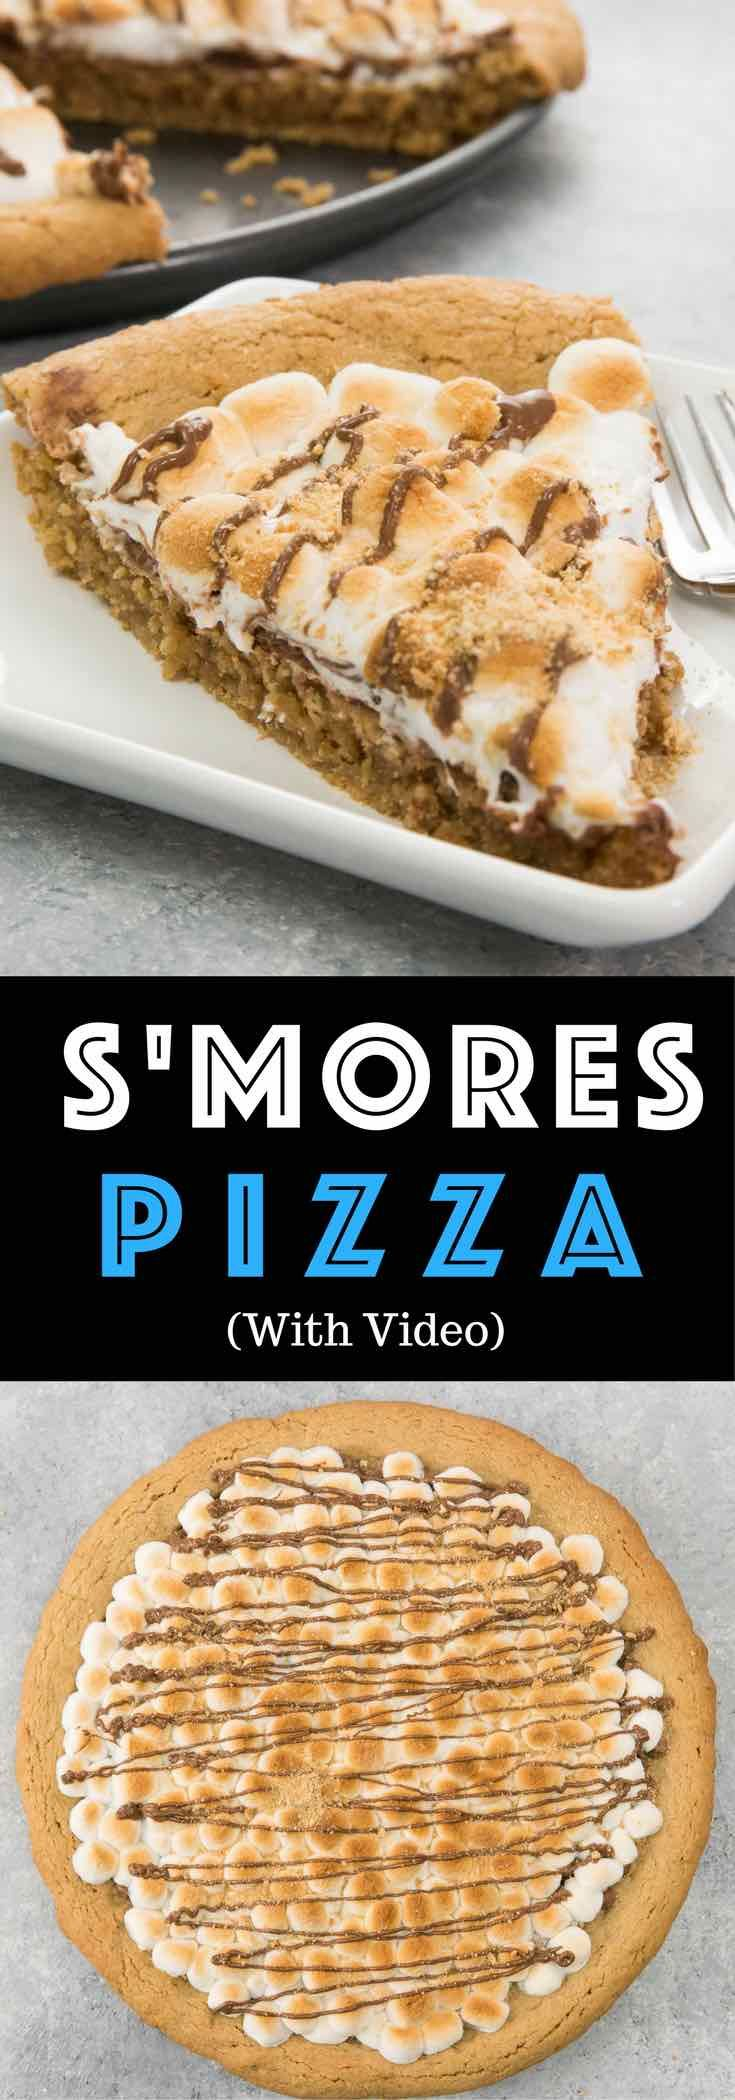 Soft & Gooey Loaded S'mores Pizza or S'mores Pie - flavored with crushed graham crackers cookie dough, and layered with marshmallow and sweet chocolate chips. Who needs a campfire? Bake this indoor rich, gooey S'mores cake instead! Loads of s'mores in every bite! So good! Quick and easy recipe. | Tipbuzz.com